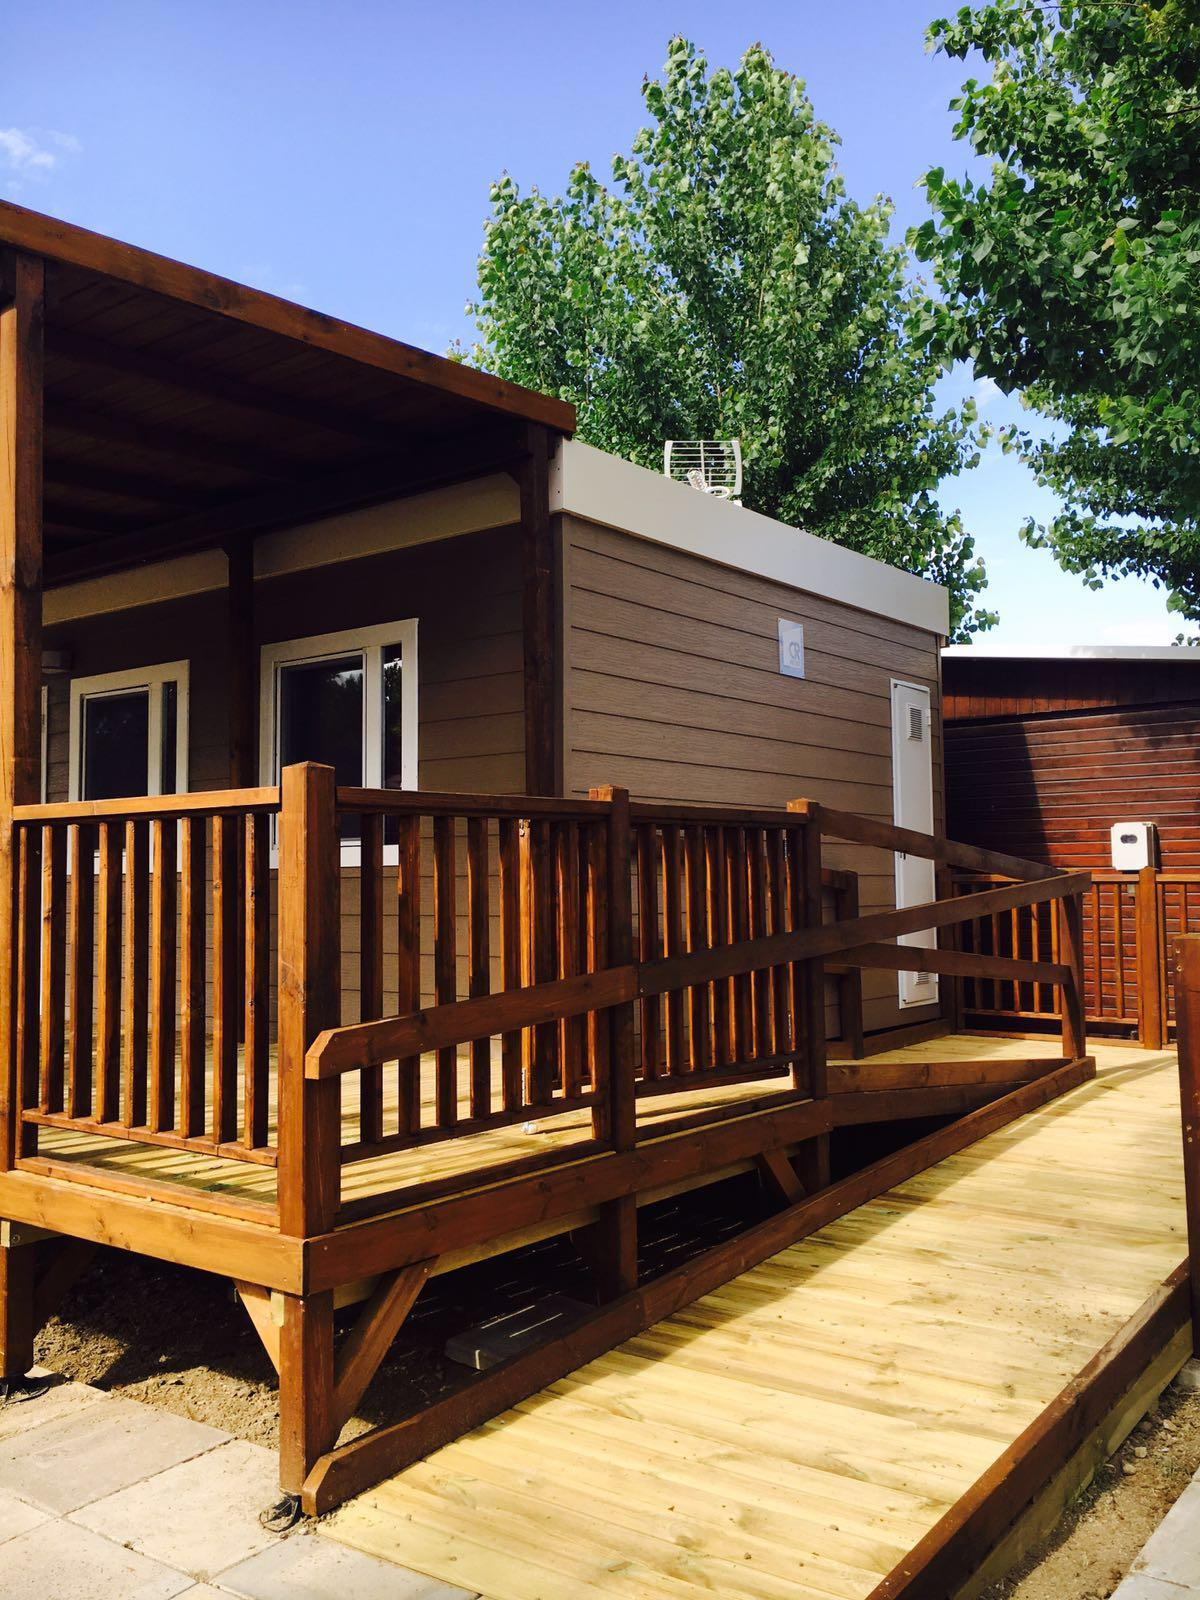 Wheelchair friendly Camping Village Punta Navaccia - Tuoro Sul Trasimeno- Perugia